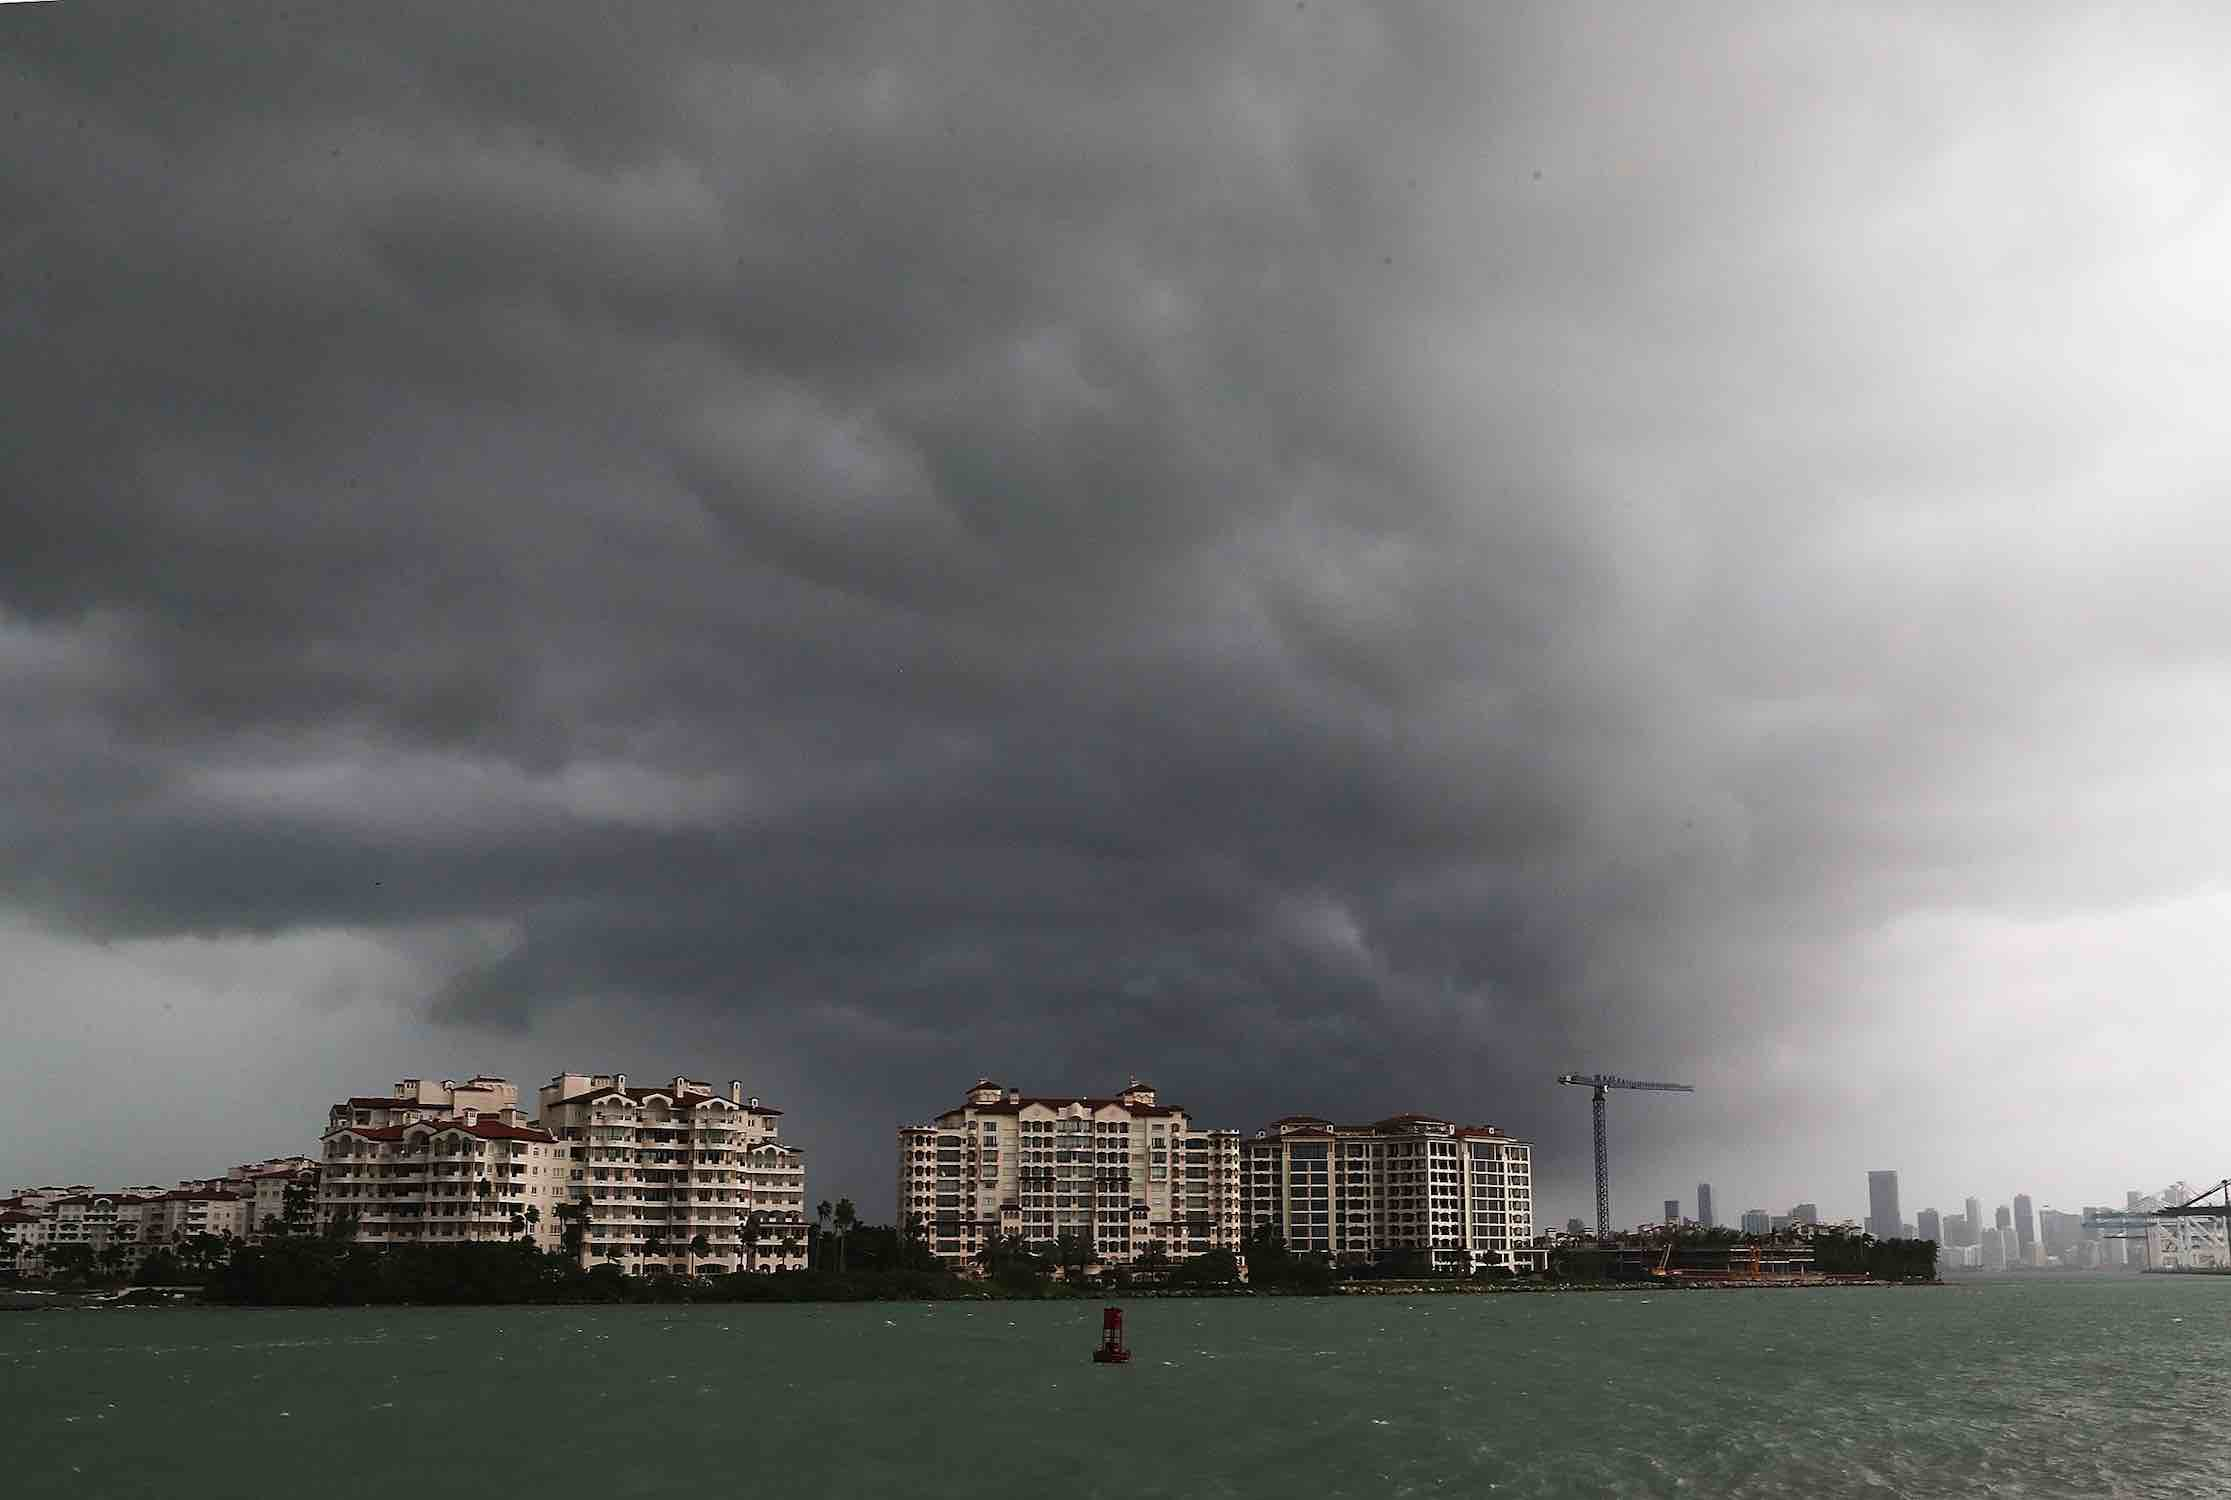 "<div class=""meta image-caption""><div class=""origin-logo origin-image kgo""><span>kgo</span></div><span class=""caption-text"">Storm clouds are seen over Fisher Island as Hurricane Irma approaches on September 9, 2017 in Miami Beach, Florida.  (Joe Raedle/Getty )</span></div>"